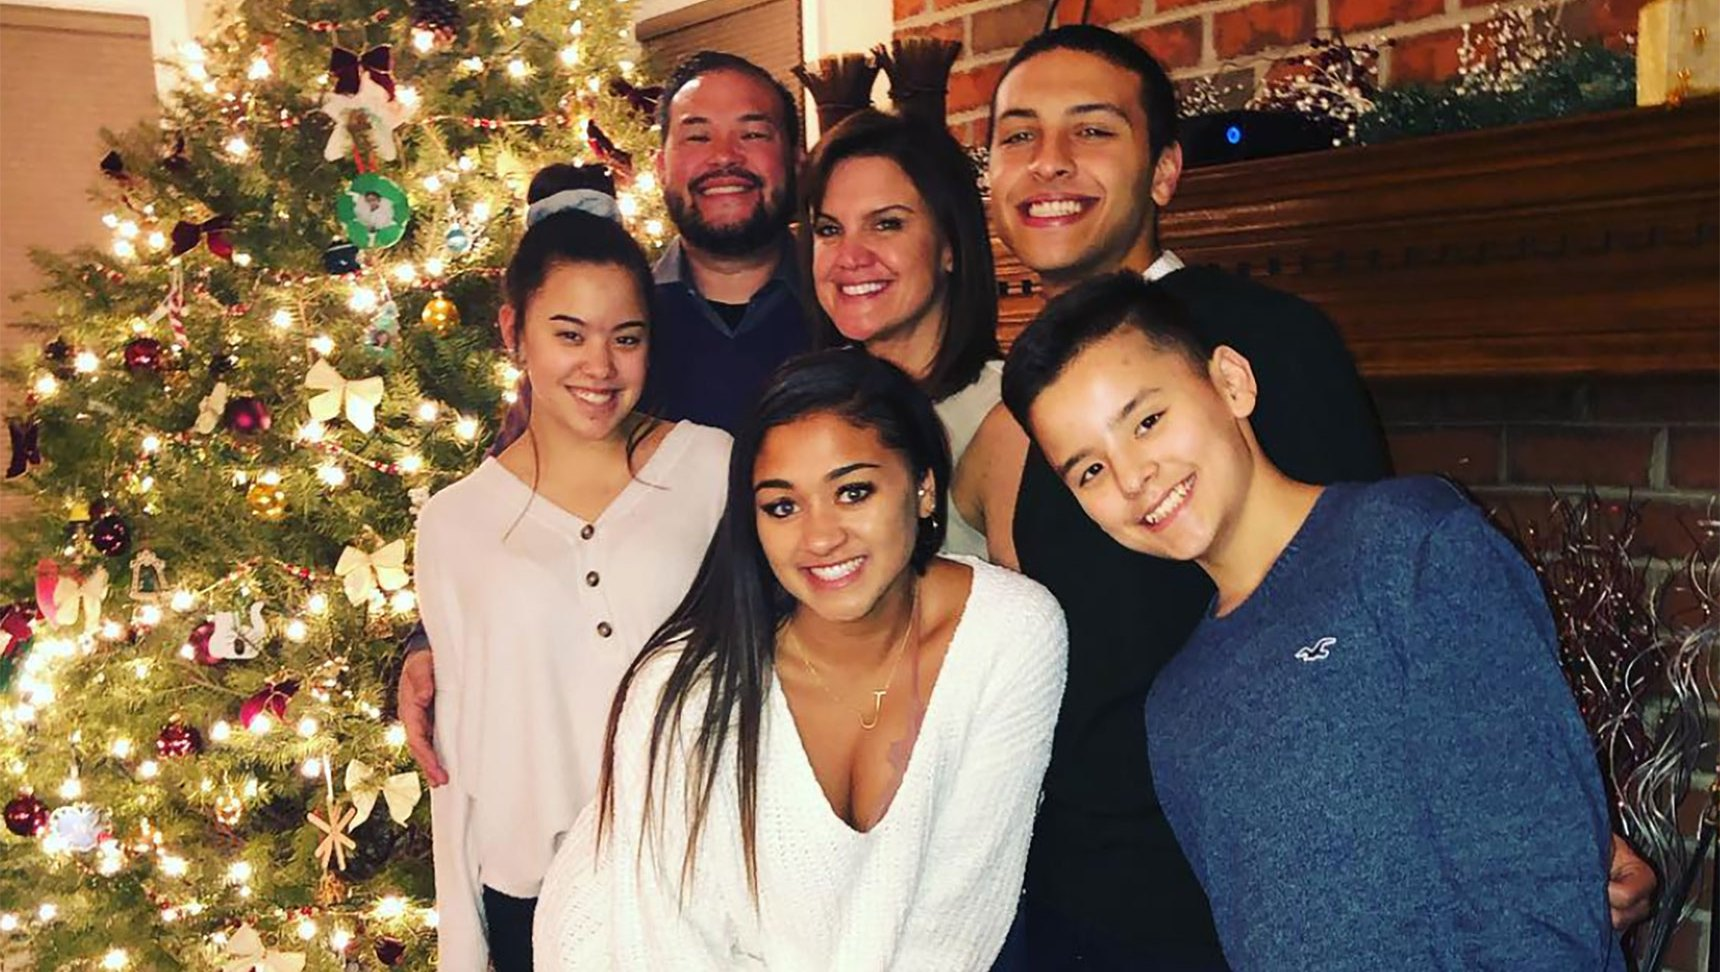 Jon Gosselin Celebrates Christmas With Collin and Hannah